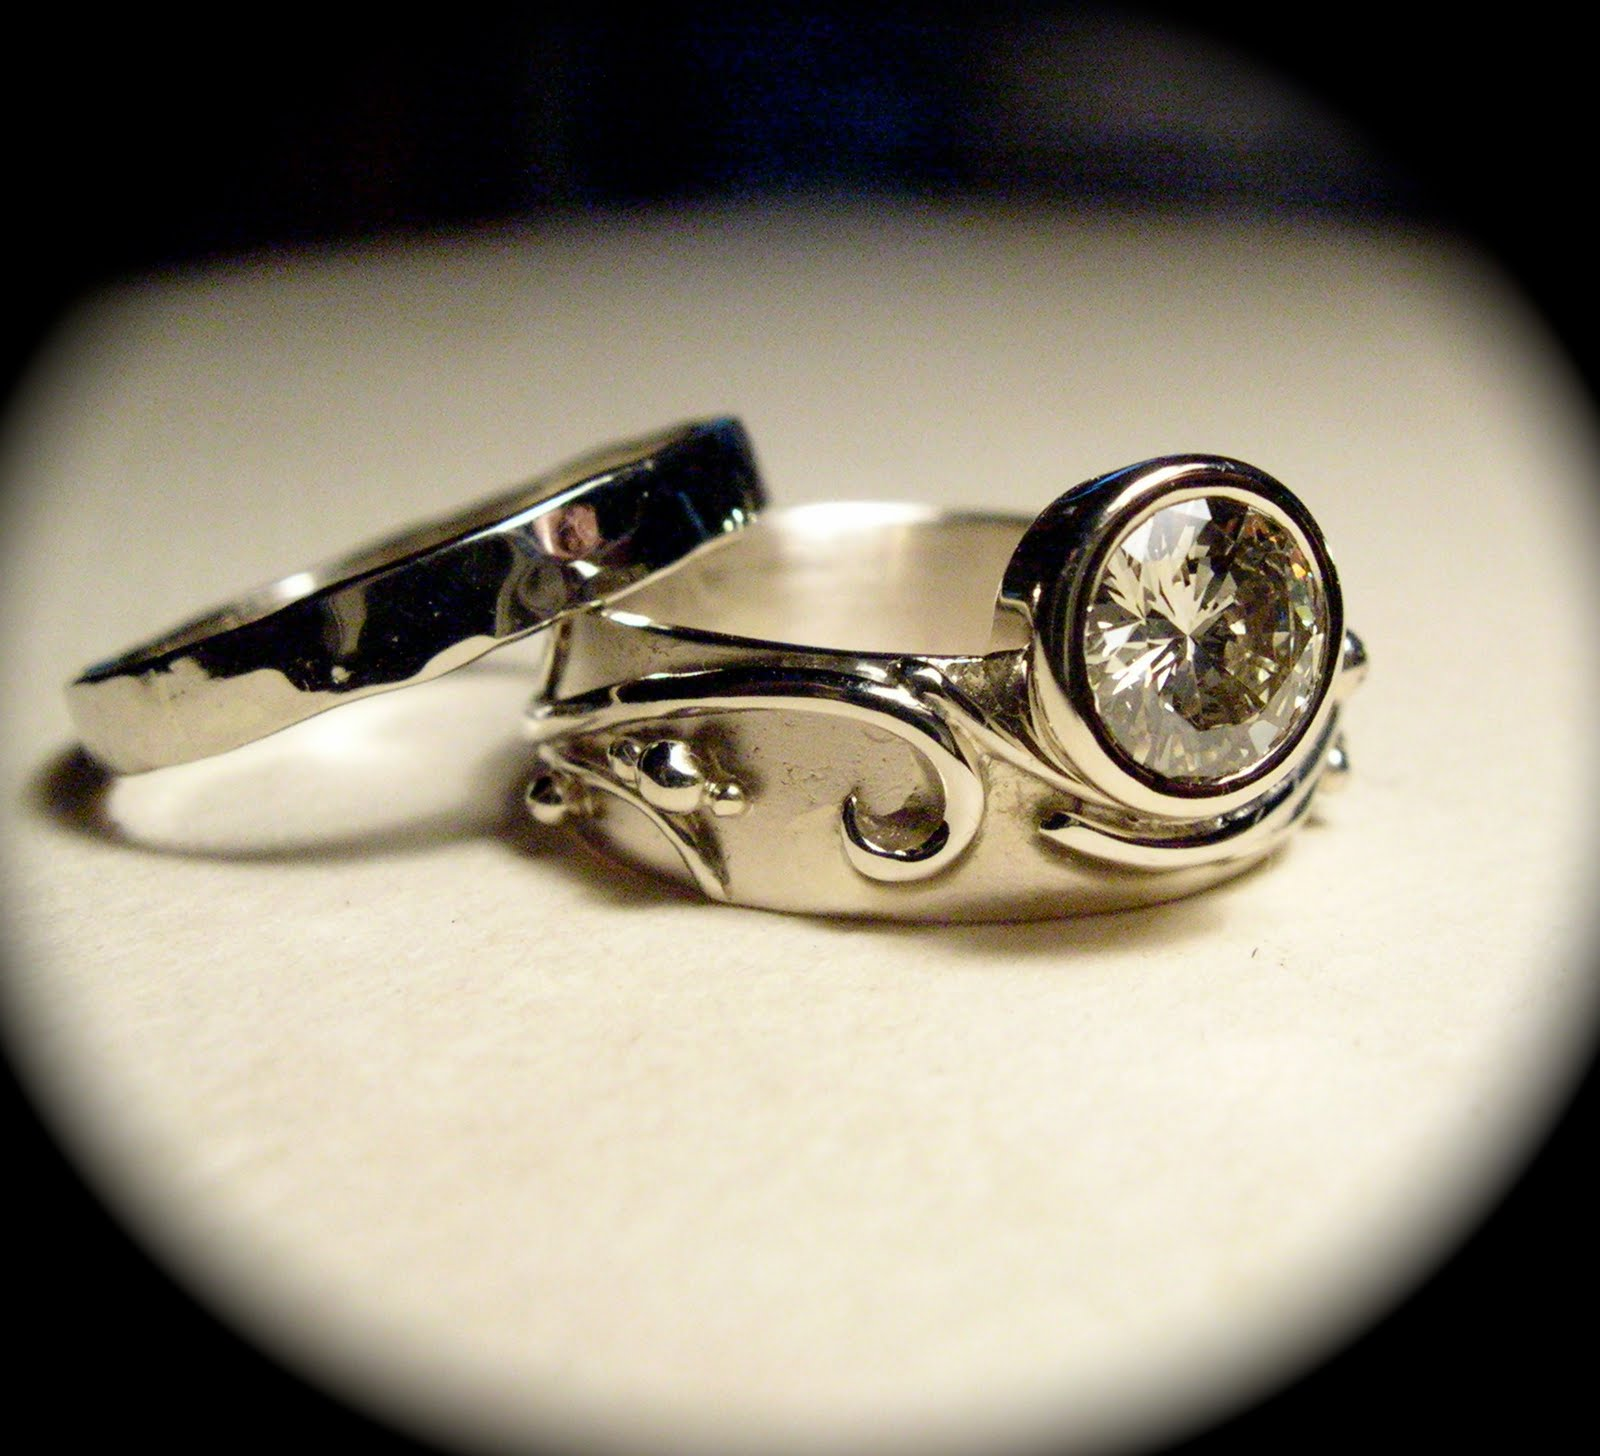 Copyright Laura Guptill Jewelry Designs Email Thisblogthis: Handmade Wedding Bands New Hshire At Websimilar.org